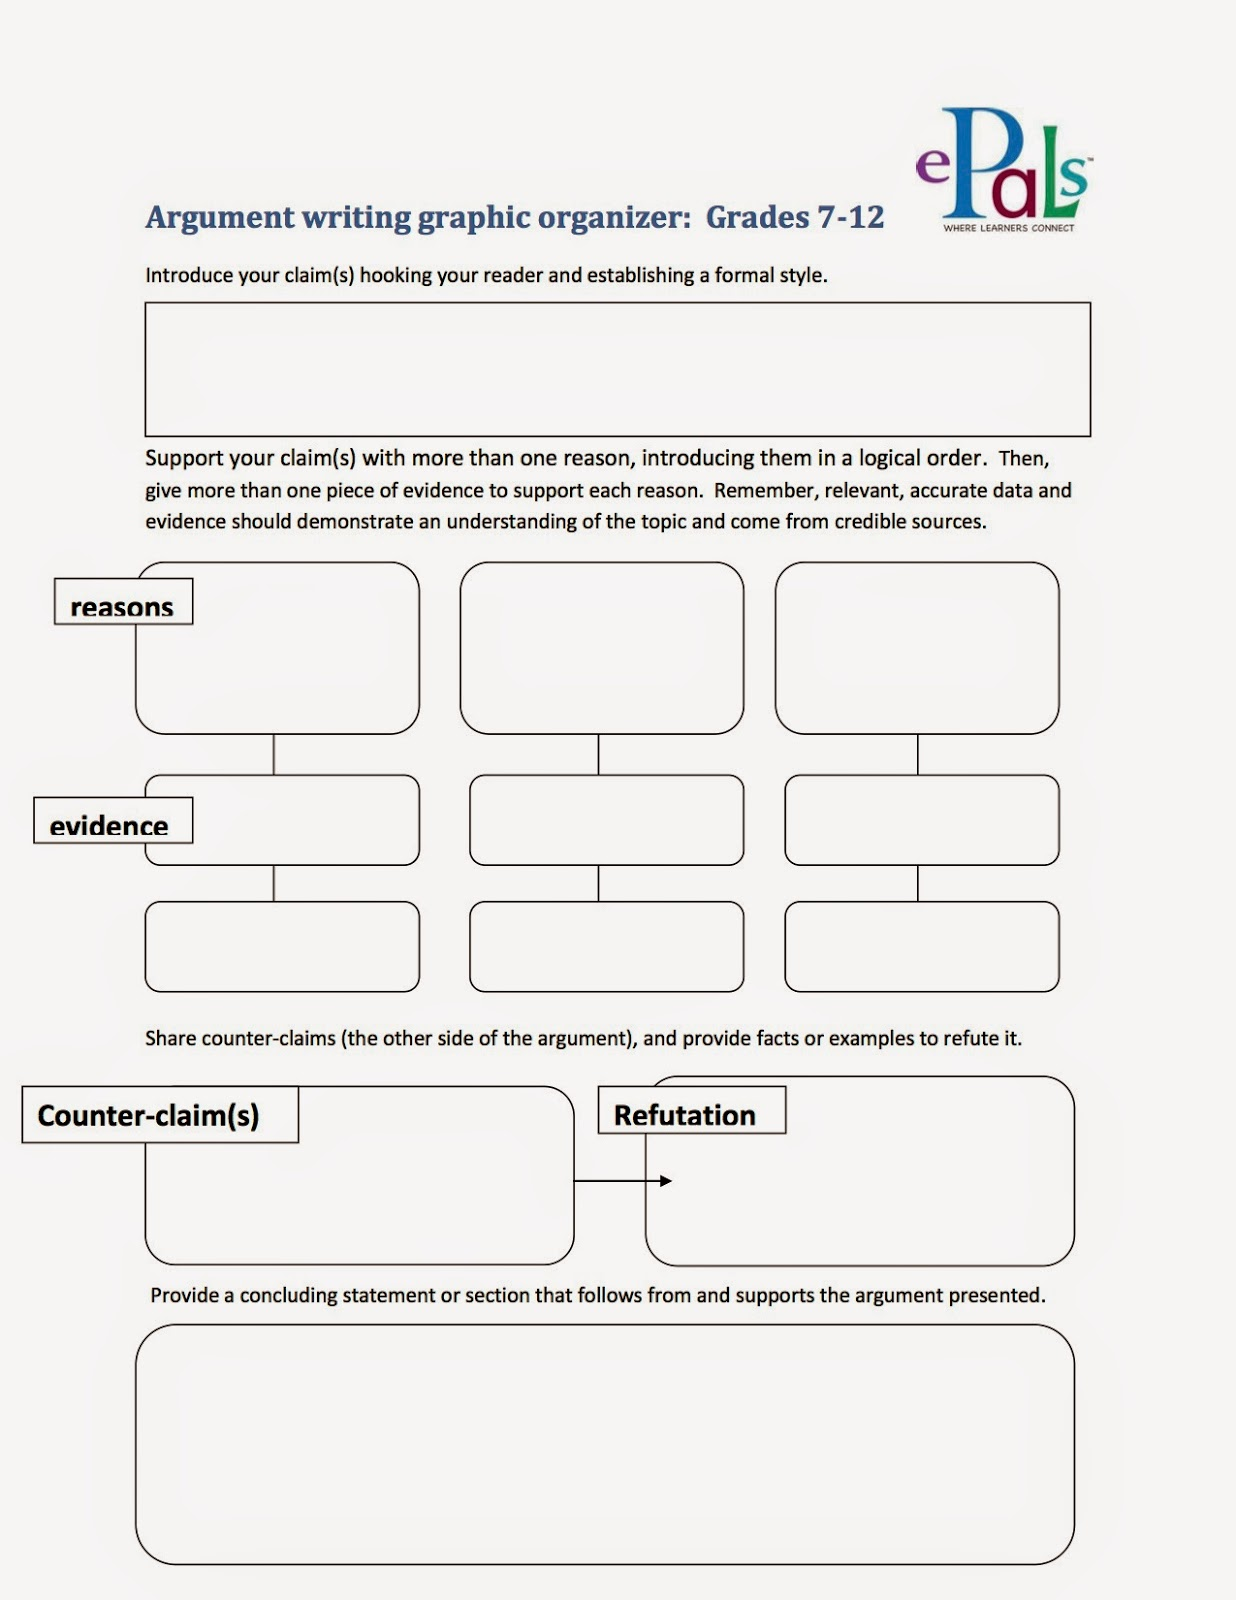 Graphic Organizers For Writing Argumentative Essays